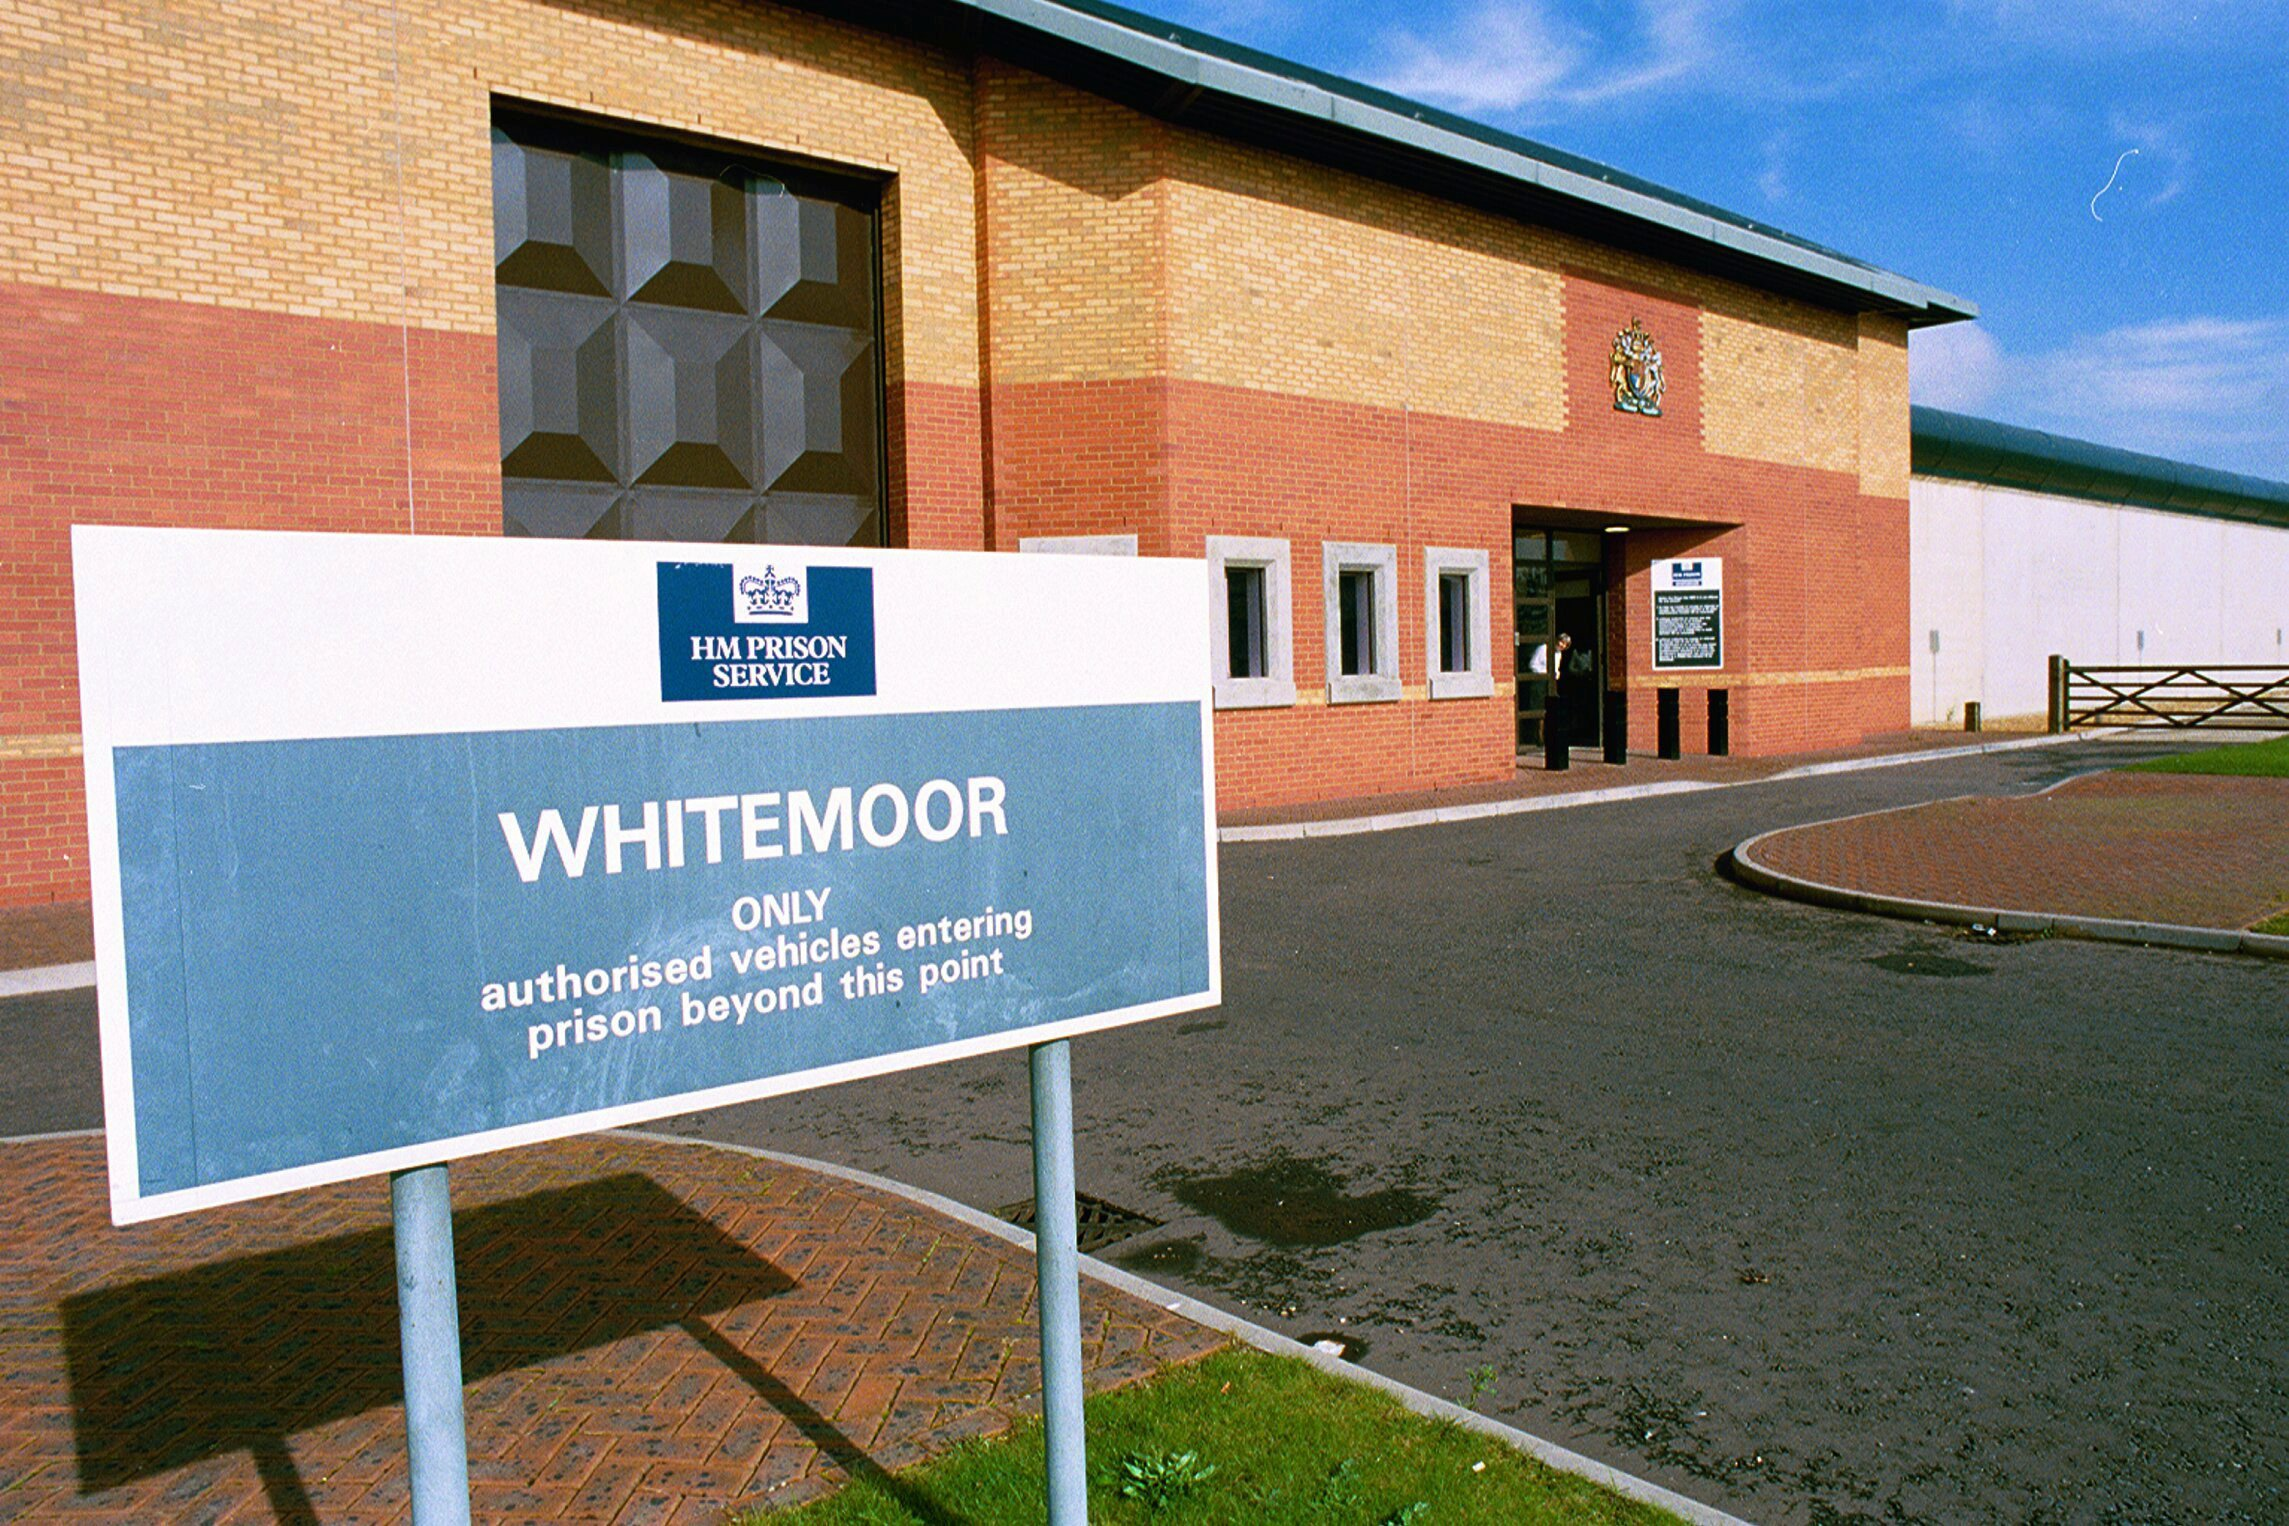 """HMP Whitemoor in March, Cambridgeshire. See Masons copy SWCAprison: A prison's use of solitary confinement is in breach of a UN torture protocol, a report has said. HMP Whitemoor in Cambridgeshire was found to lock inmates in a segregation unit for more than 23 hours a day, with """"little meaningful human contact"""". Its Independent Monitoring Board said this broke the UN's Optional Protocol to the Convention Against Torture."""